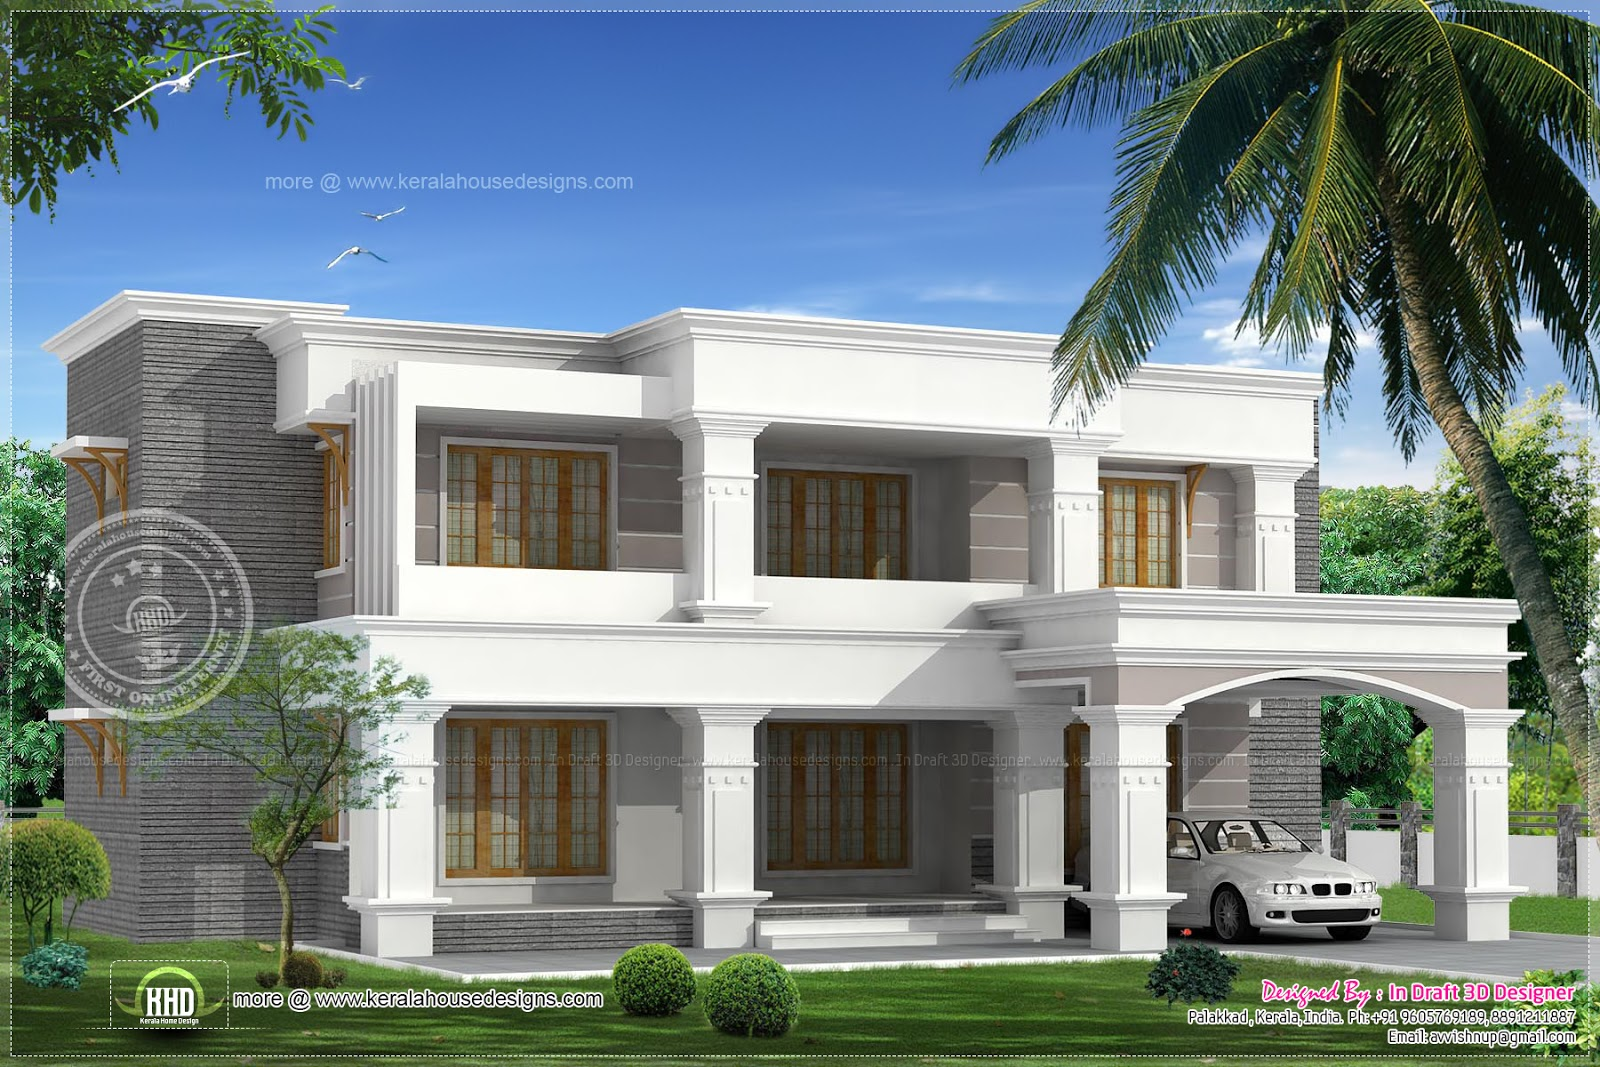 Two different elevations of a luxury 4 bed room villa for 4 bedroom villa plans